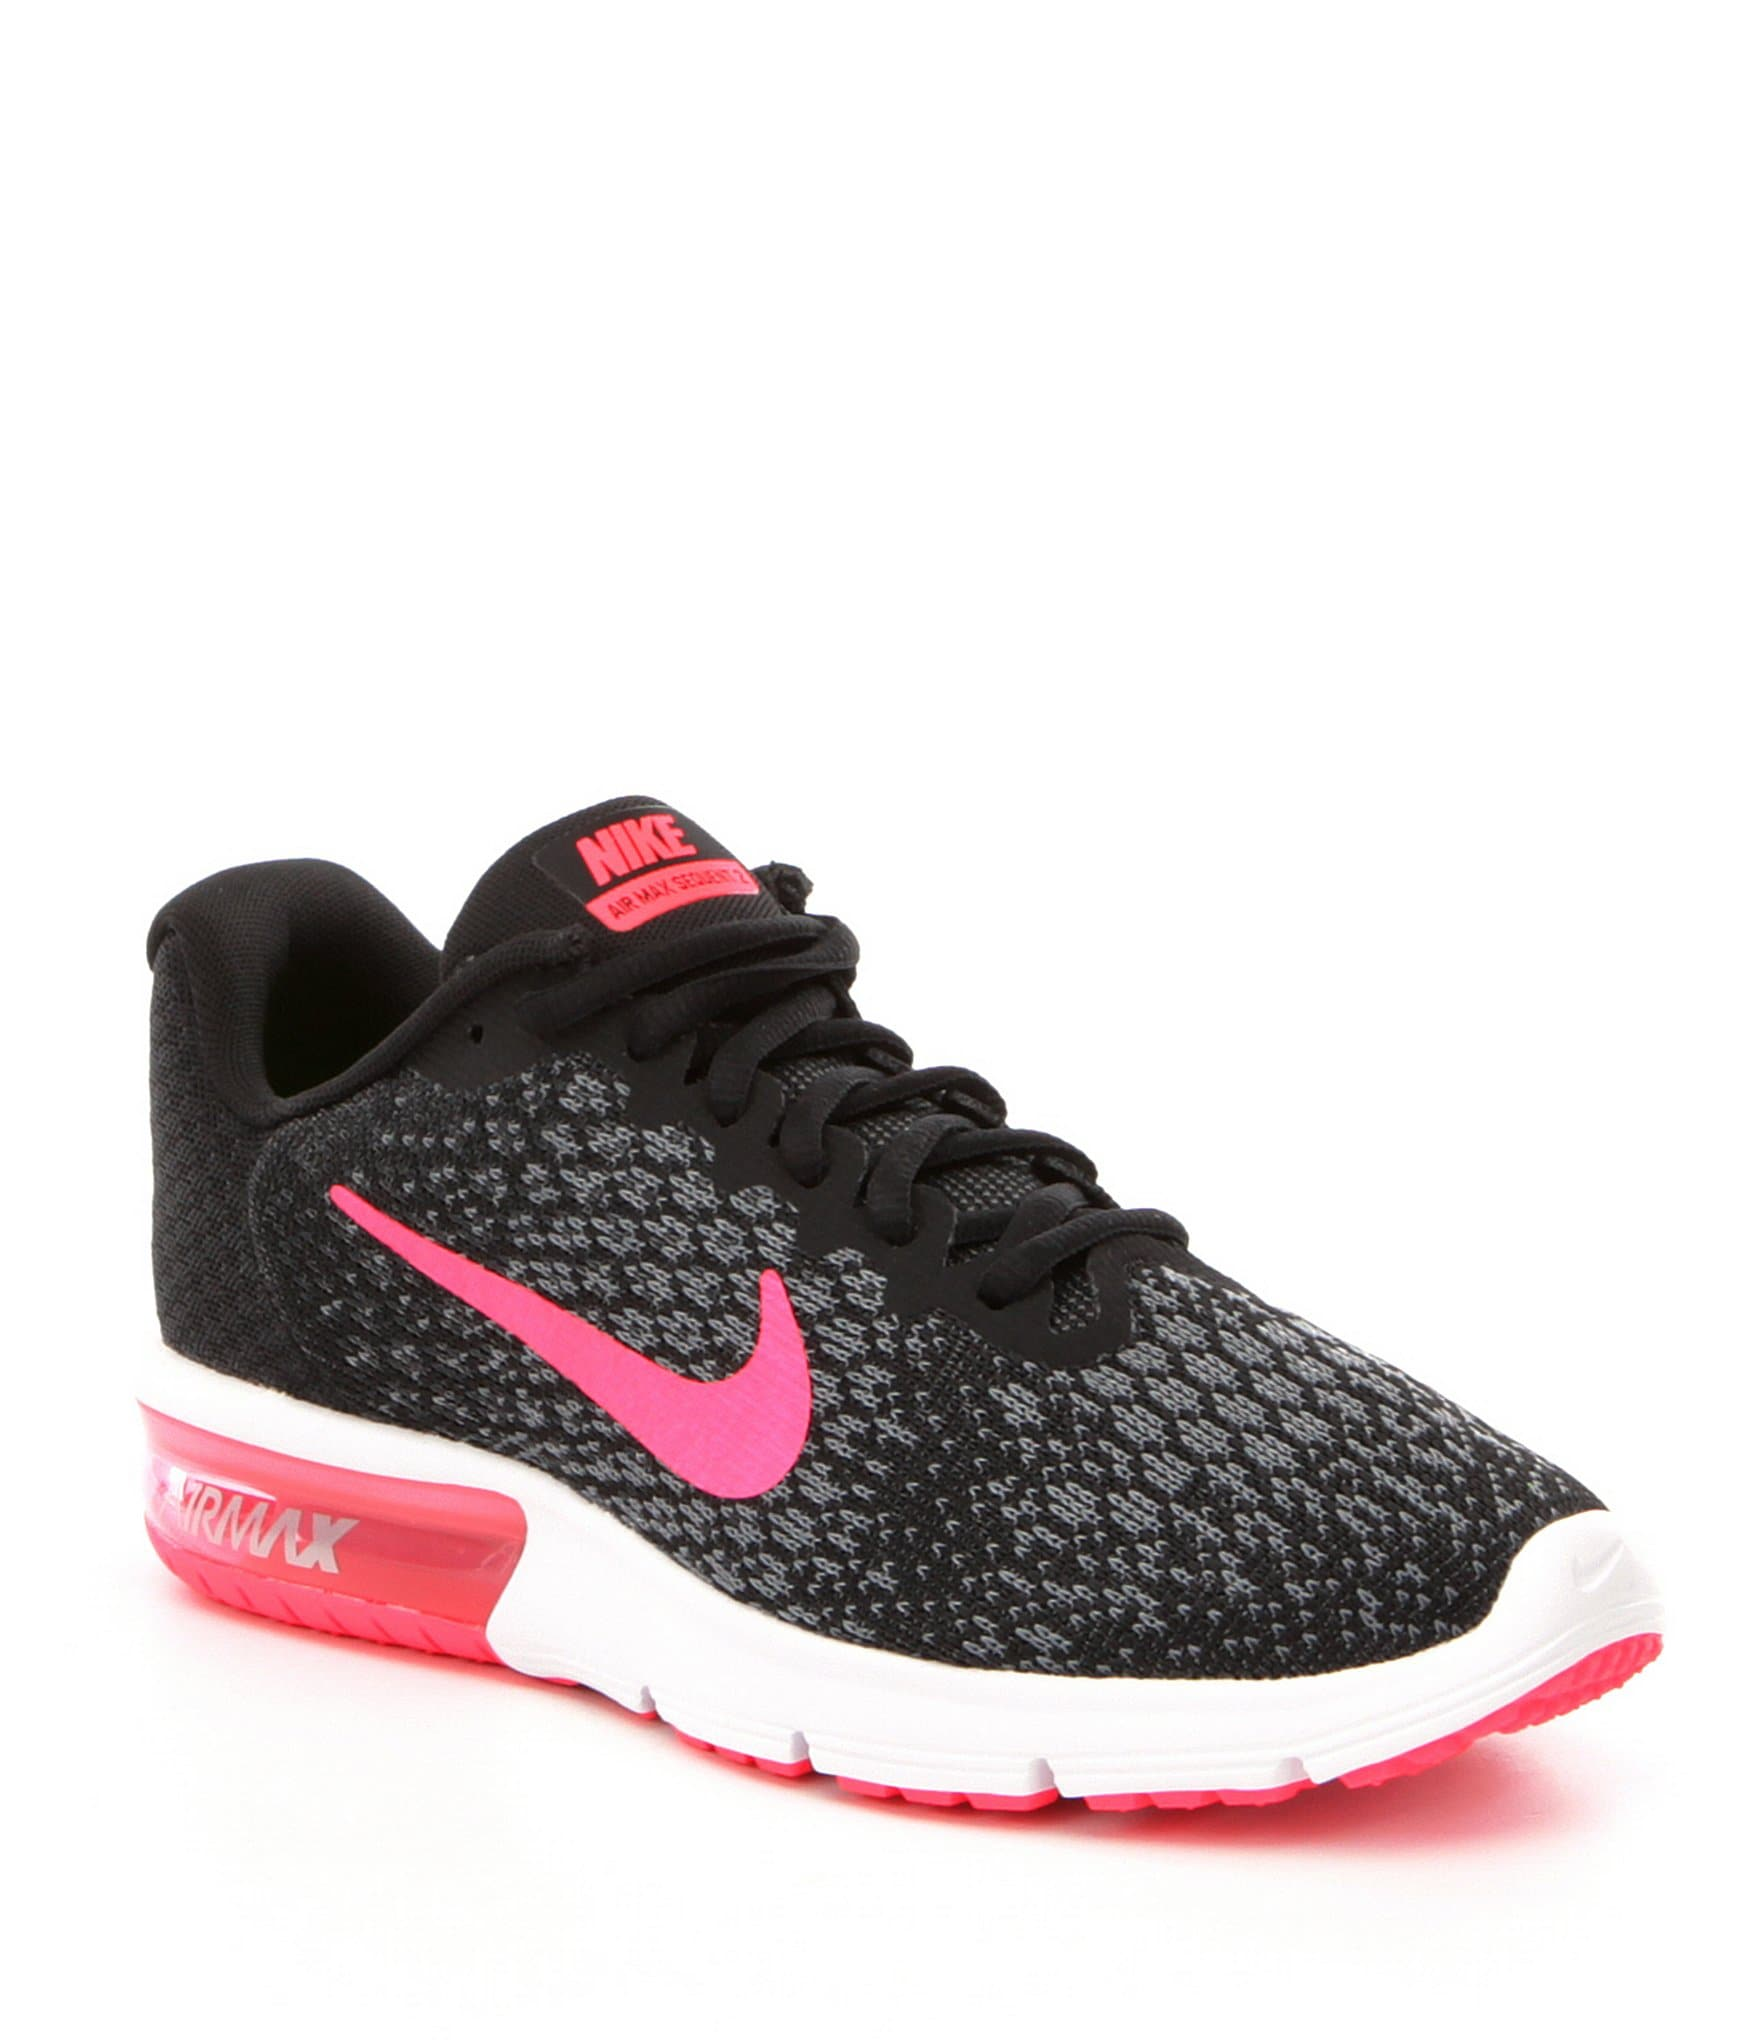 nike womens air max sequent 2 running shoes dillards